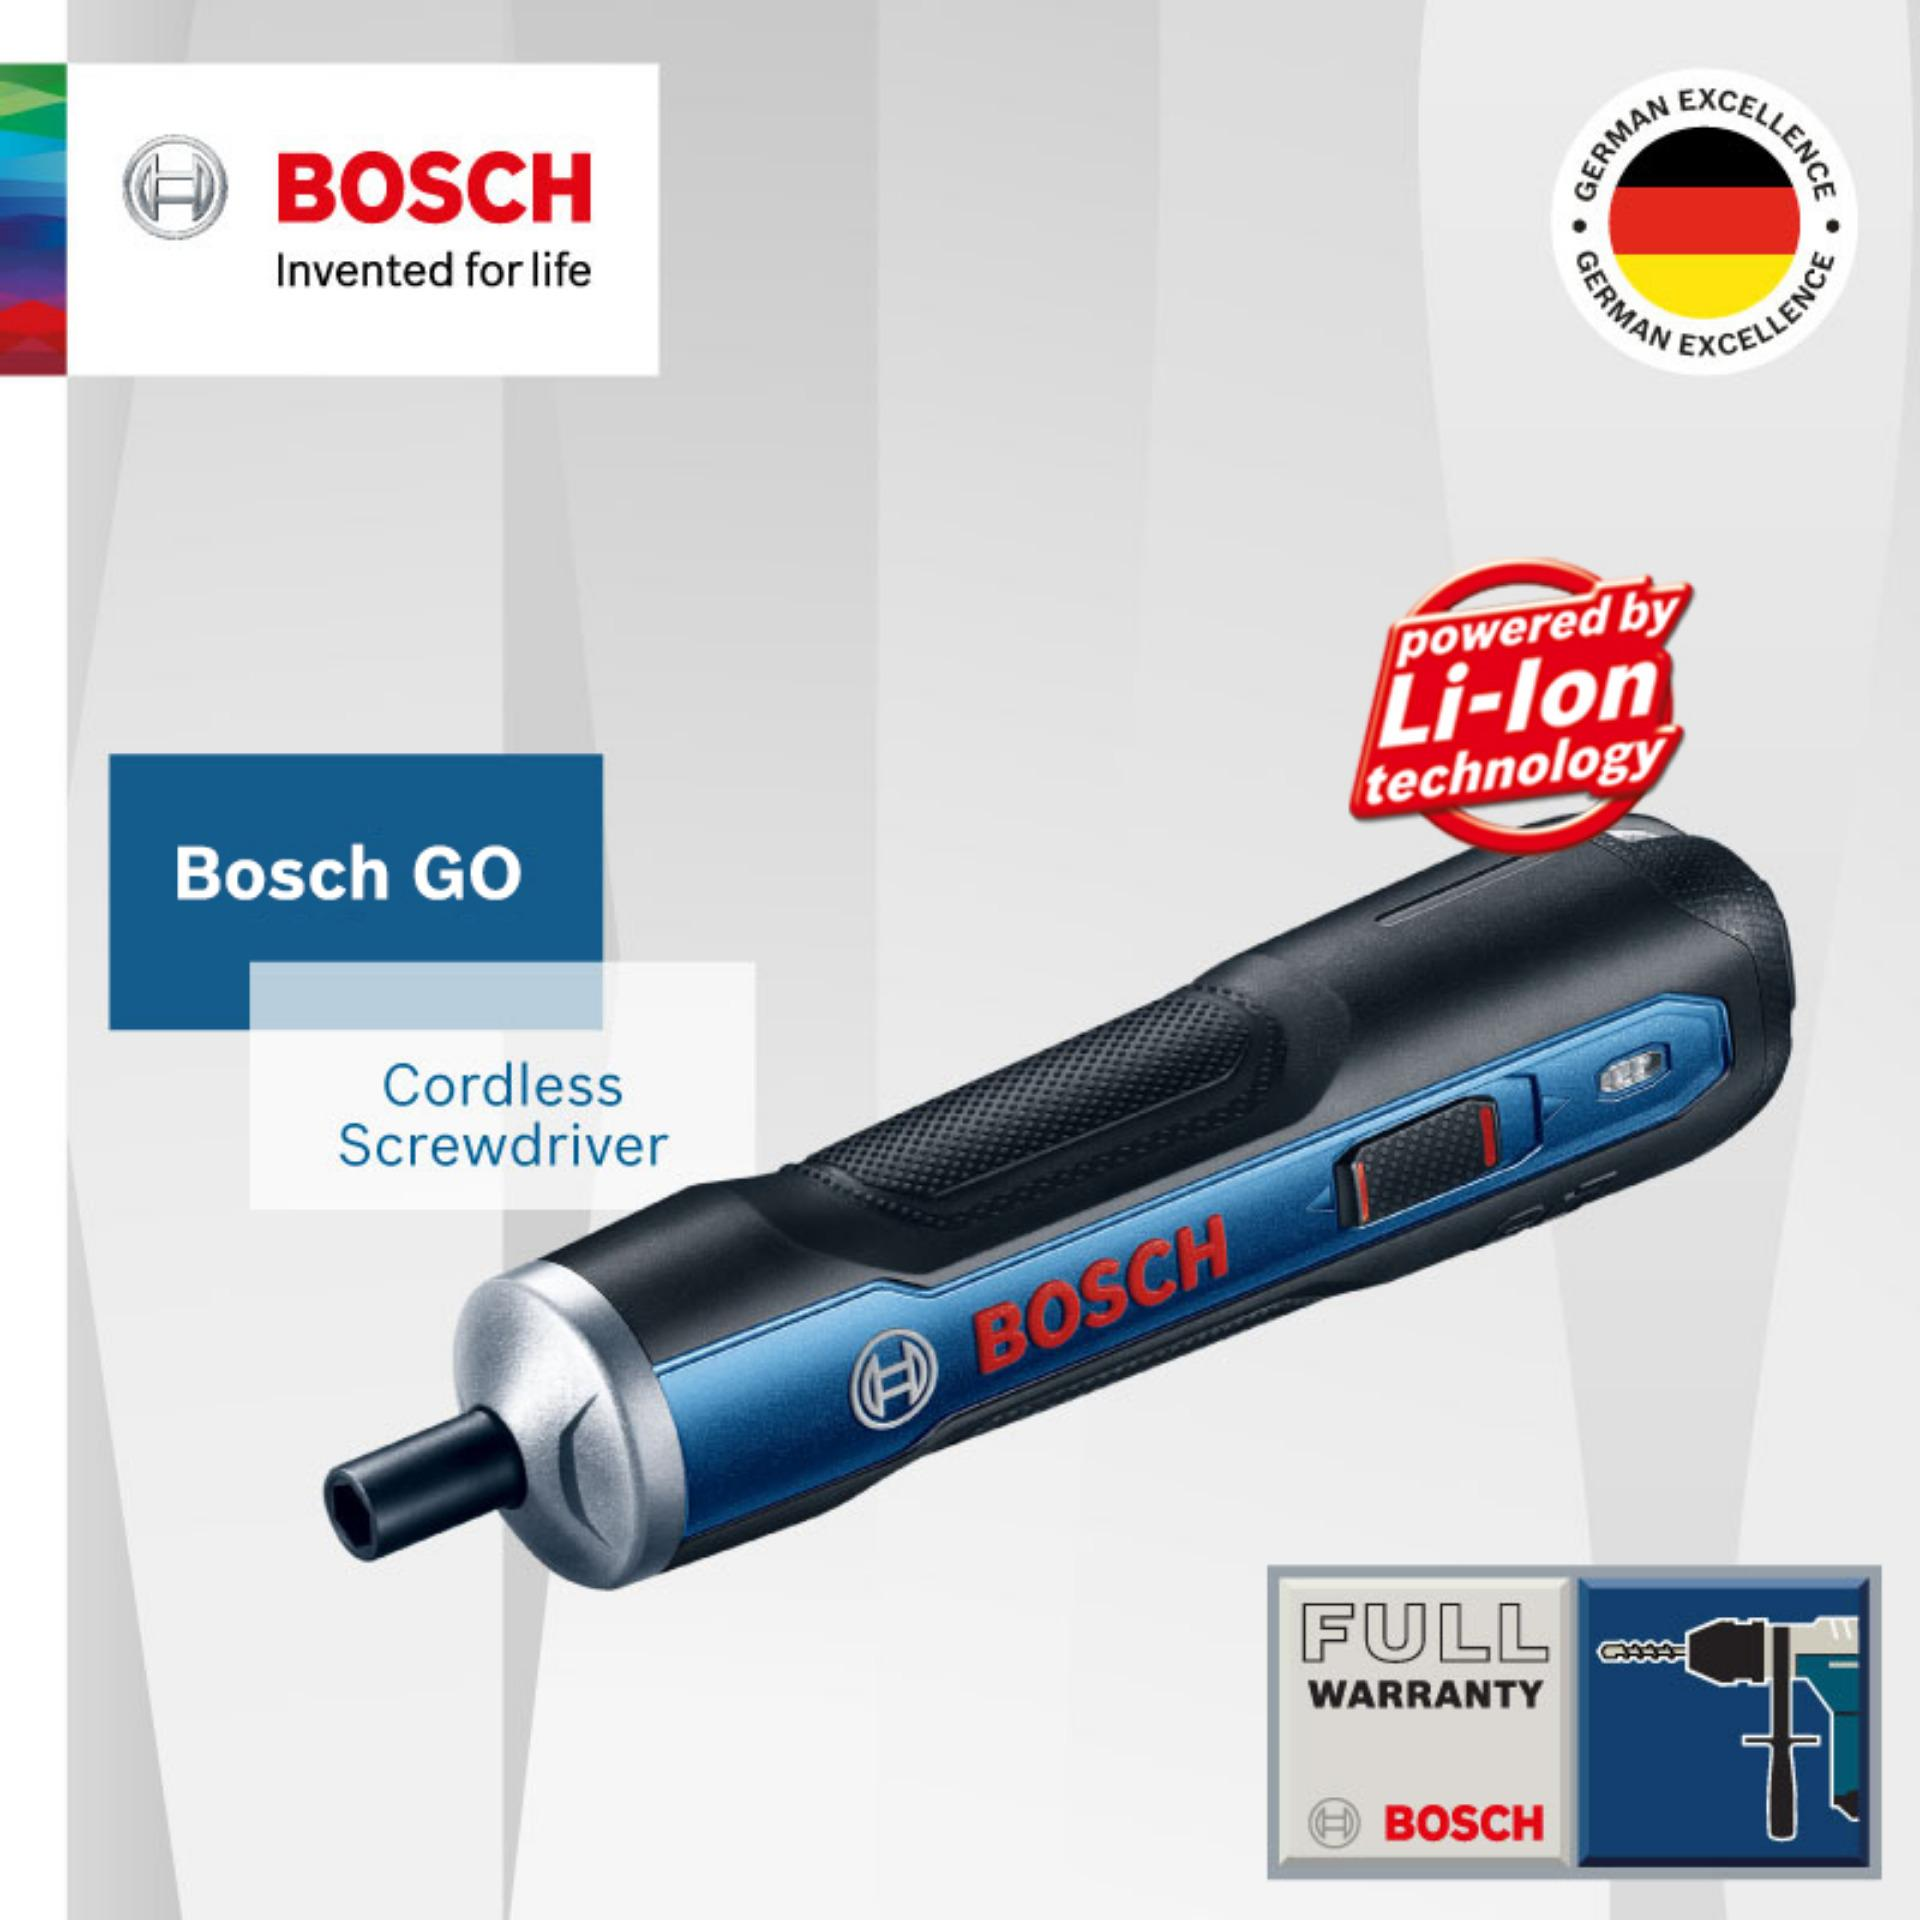 Bosch GO Rechargeable 3.6V Cordless Screwdriver Kit with 33pcs Screwdriver Bits